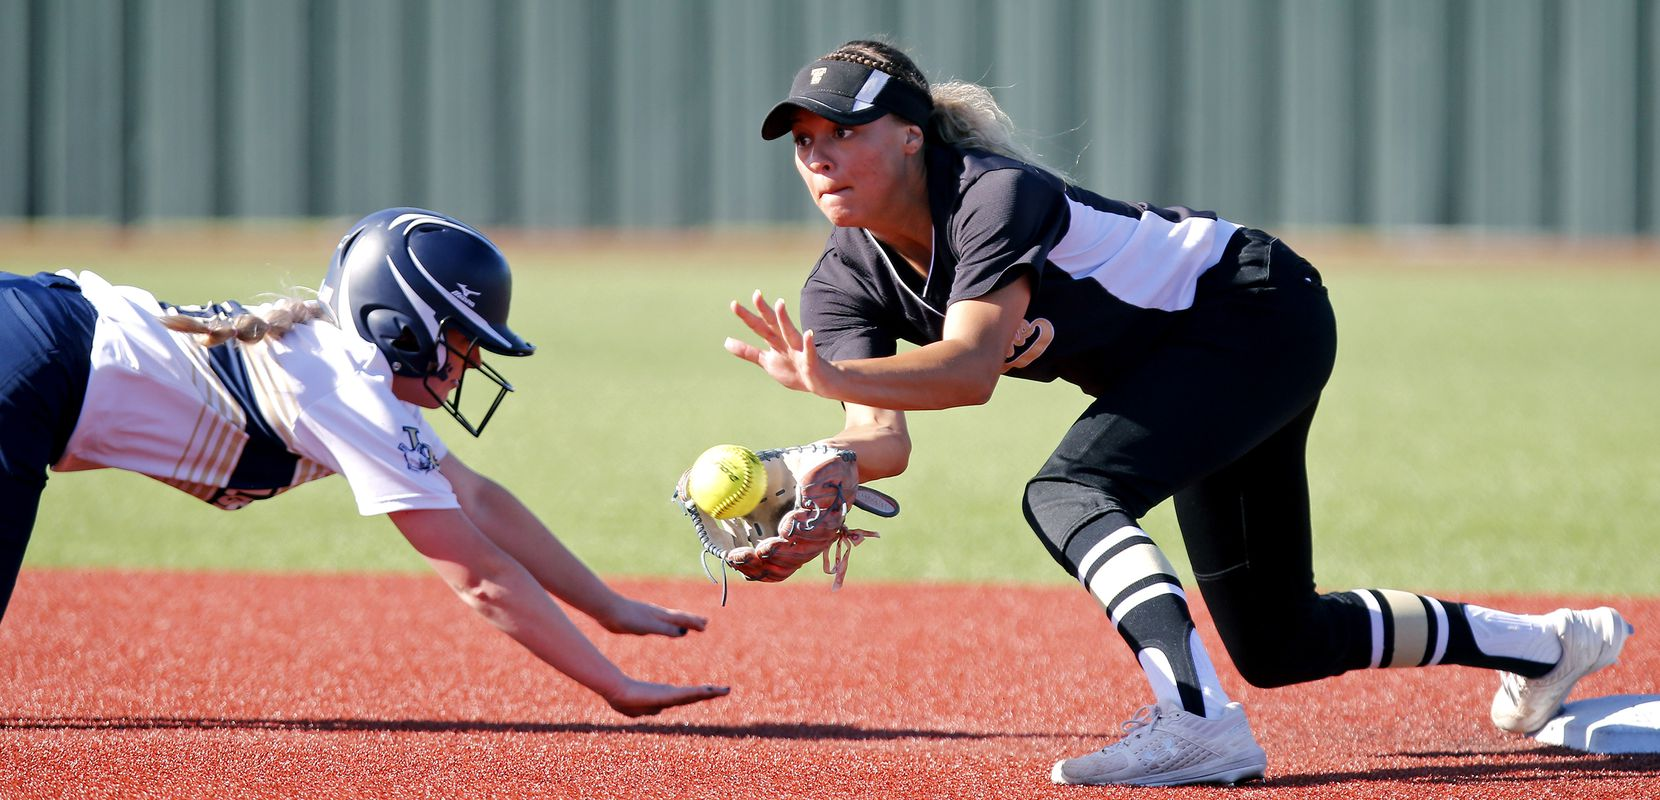 Little Elm center fielder Tatum Mowery (3) was ruled safe at second base as The Colony shortstop Jayda Coleman (10) attempts the tag on a pick off play in the third inning as The Colony High School played Little Elm High School in a playoff game held at Prosper High School on Tuesday, May 21, 2019.  (Stewart F. House/Special Contributor)